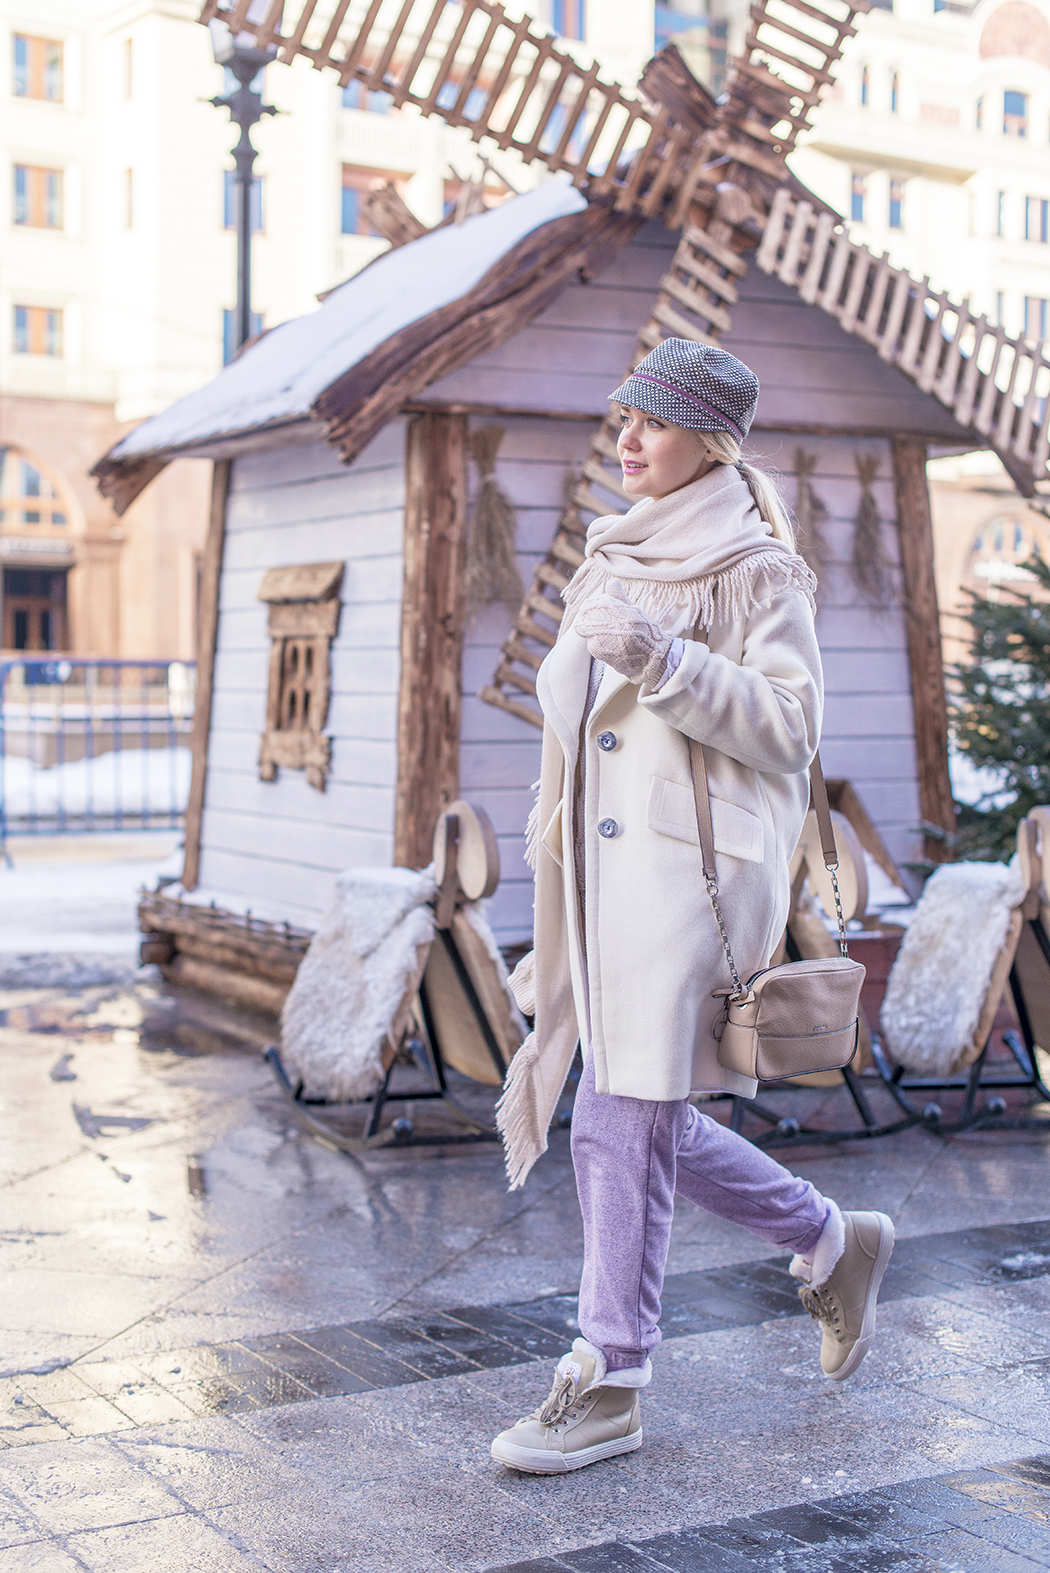 inspiration, GUM, New year 2015, зима в России, ГУМ, streetstyle, winter outfit, winter streetstyle, moscow fashion week, annamidday, top fashion blogger, top russian fashion blogger, фэшн блогер, русский блогер, известный блогер, топовый блогер, russian bloger, top russian blogger, streetfashion, bobbi brown, lipstick, помады бобби браун, russian fashion blogger, blogger, fashion, style, fashionista, модный блогер, российский блогер, ТОП блогер, ootd, lookoftheday, look, популярный блогер, российский модный блогер, annamidday, russian girl, с чем носить белое пальто,  girly, how to wear hat, white coat, красивая девушка, русская девушка, fashion week